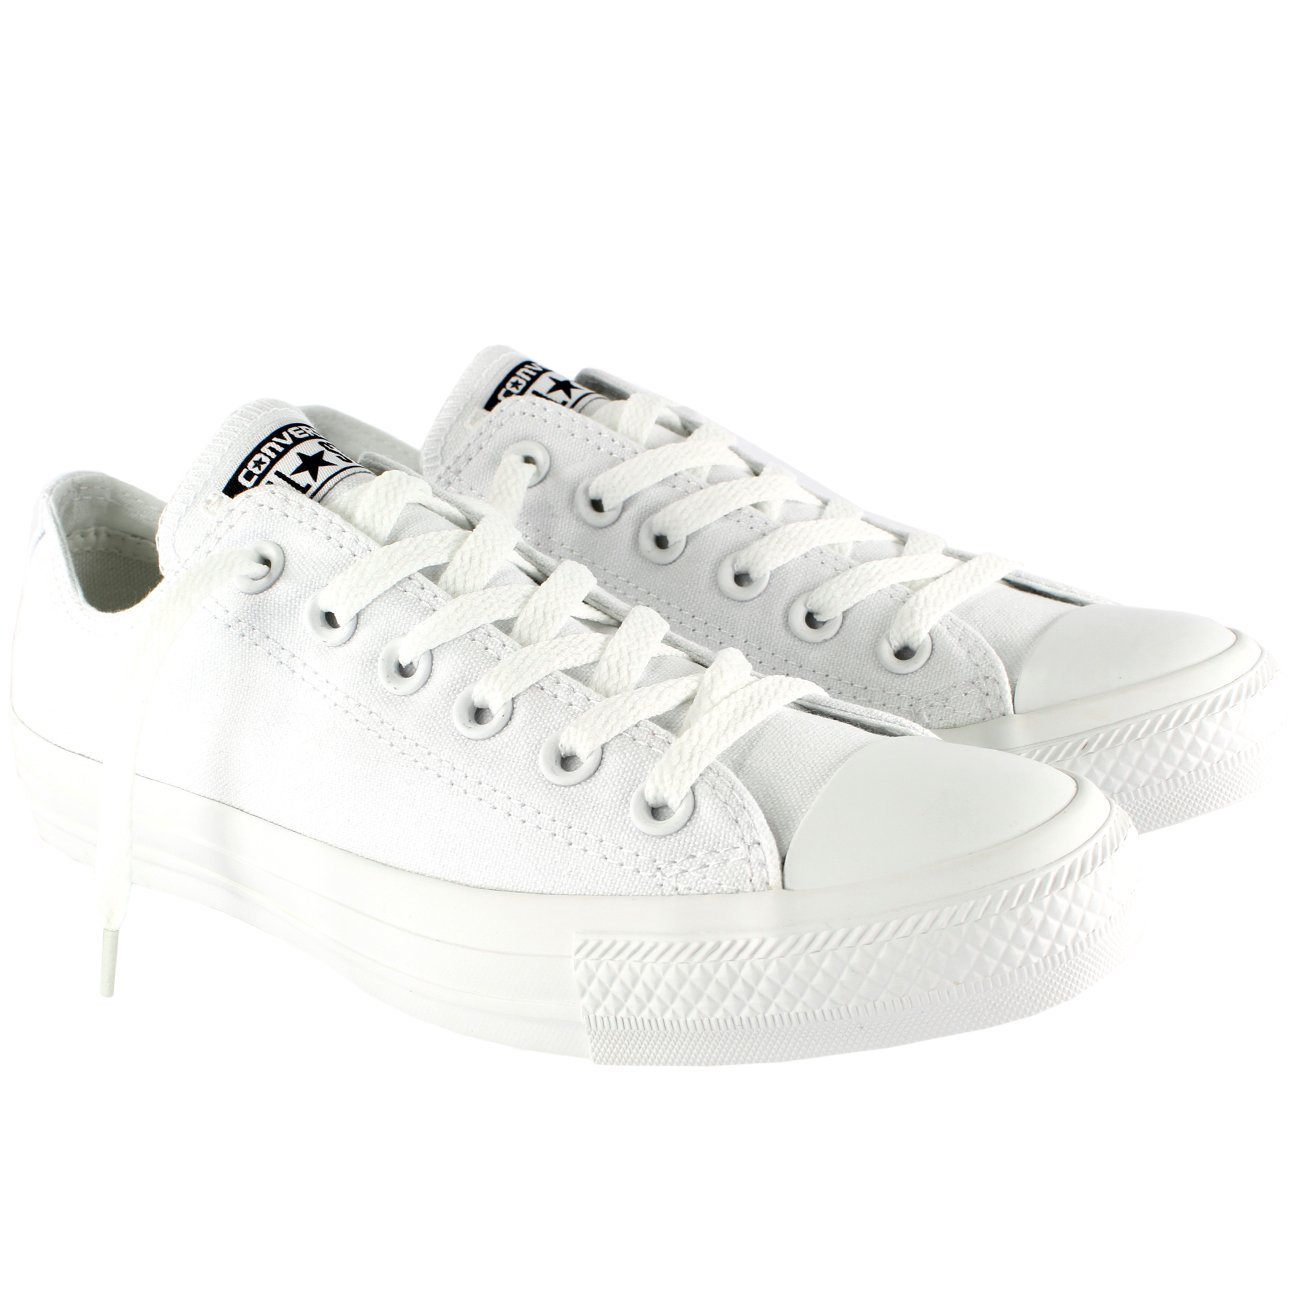 577d9c3297b5 Galleon - Converse Unisex Chuck Taylor All Star Low Top White Mono Sneakers  - 7.5 D(M) US